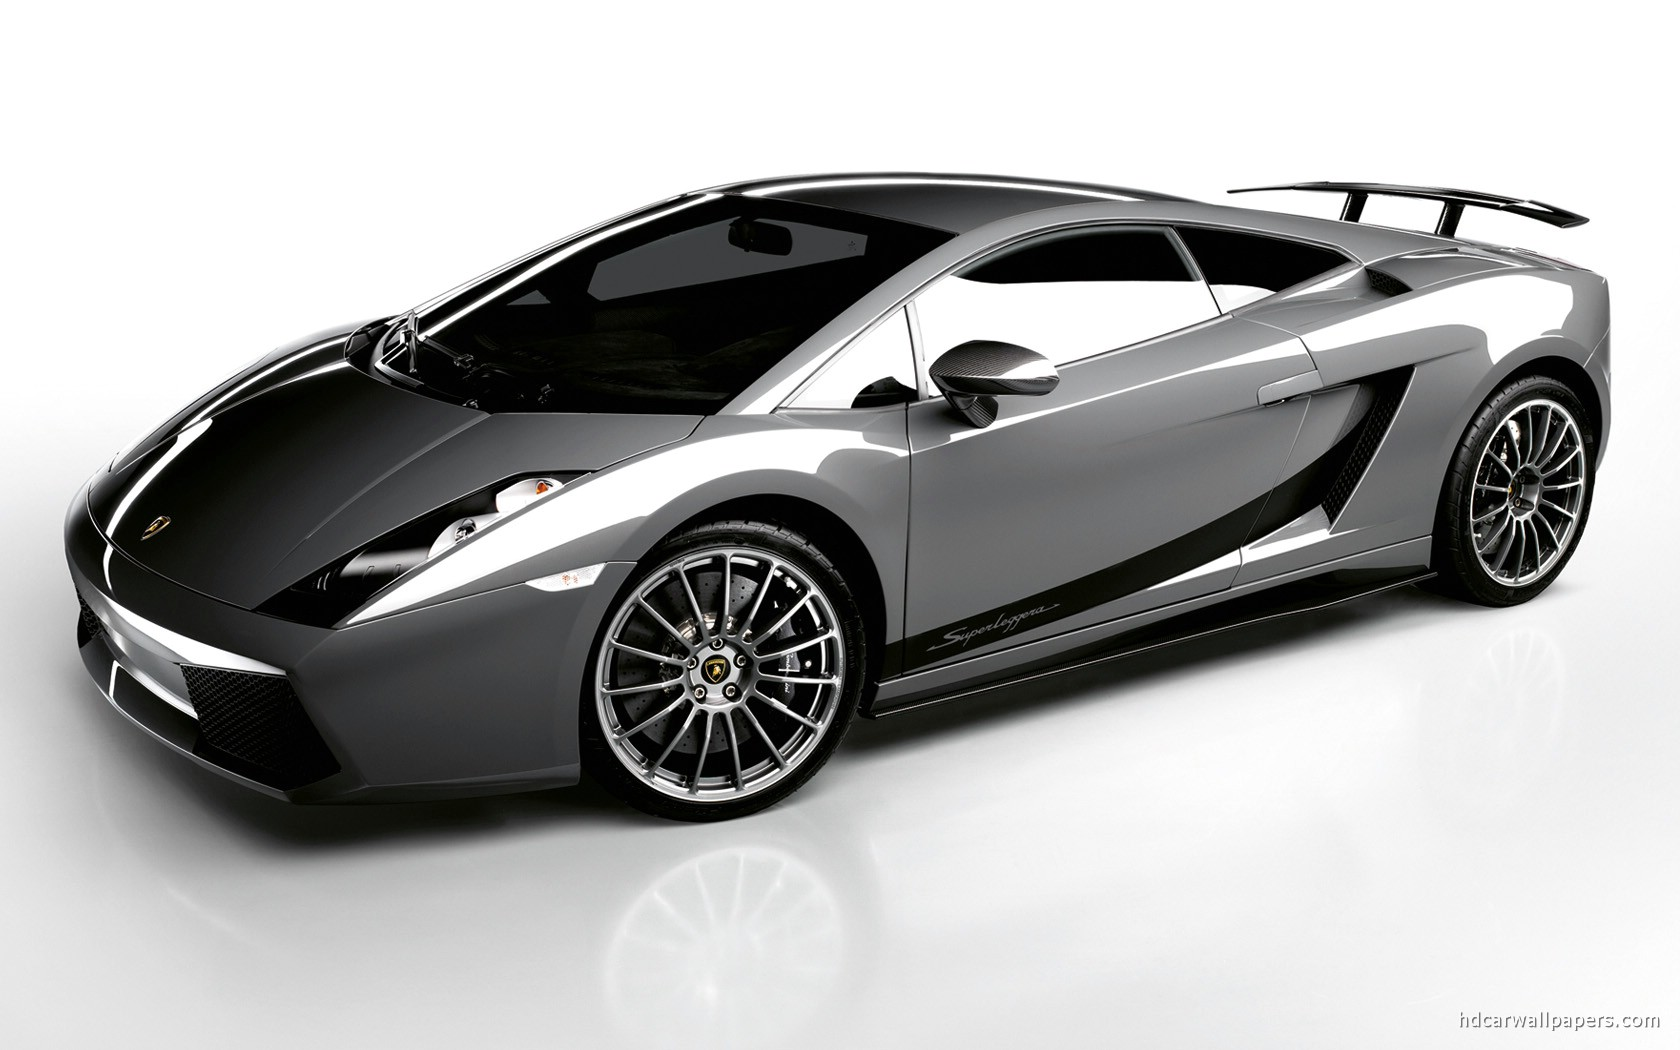 Top Wallpaper Name Sameer - lamborghini_galardo_superleggera-wide  Image_952957.jpg